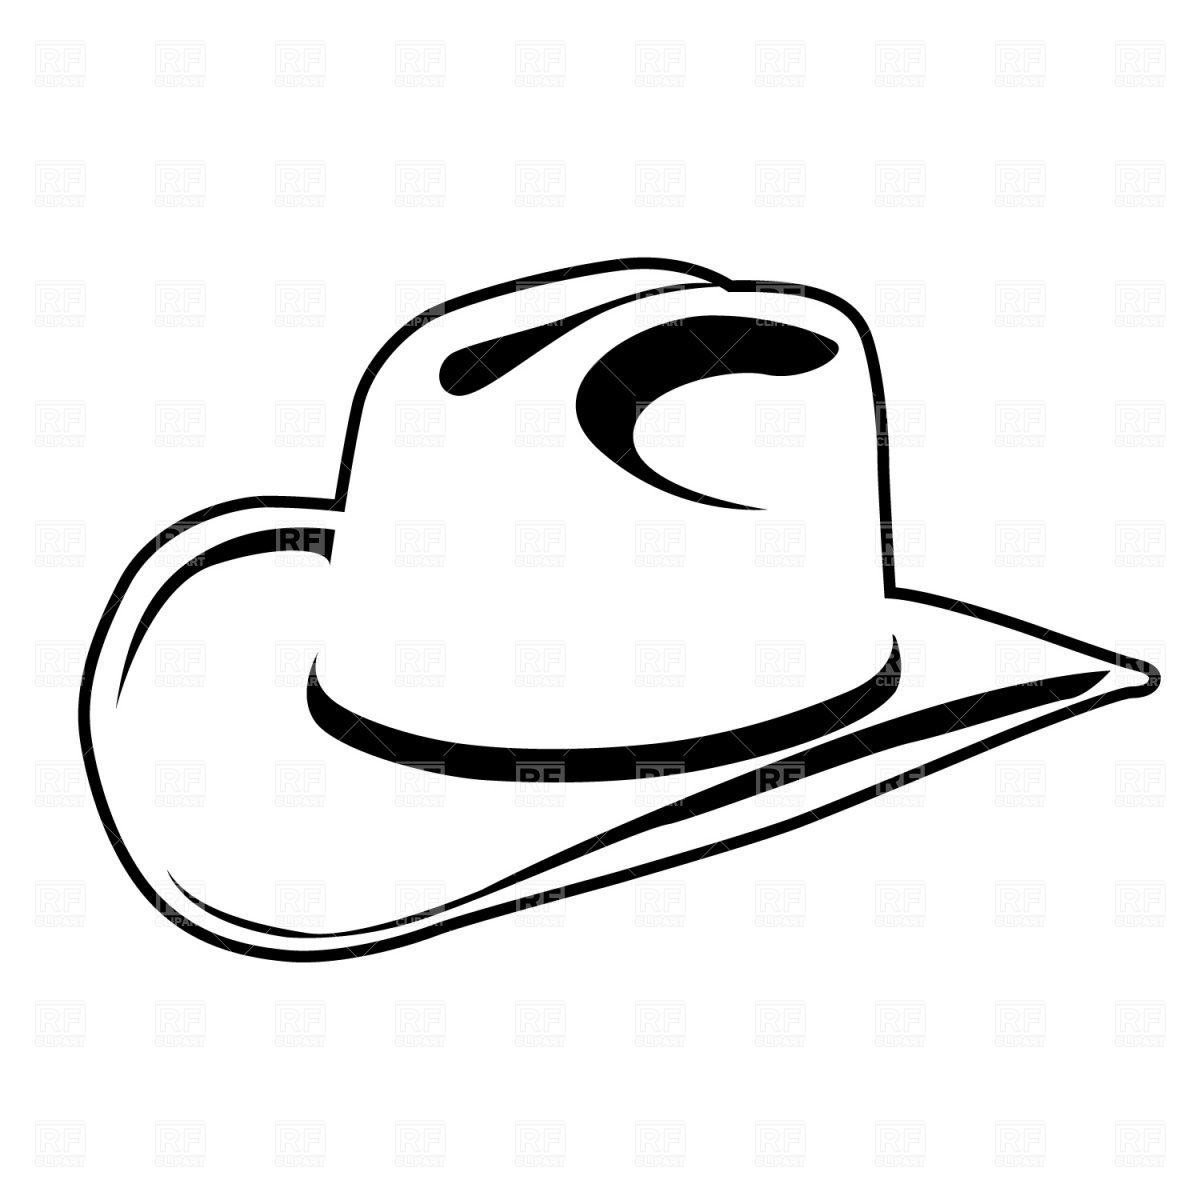 image result for cowboy hat vector art pinterest rh pinterest com Rodeo Cowboy Hats for Men Rodeo Cowboy Hats for Men